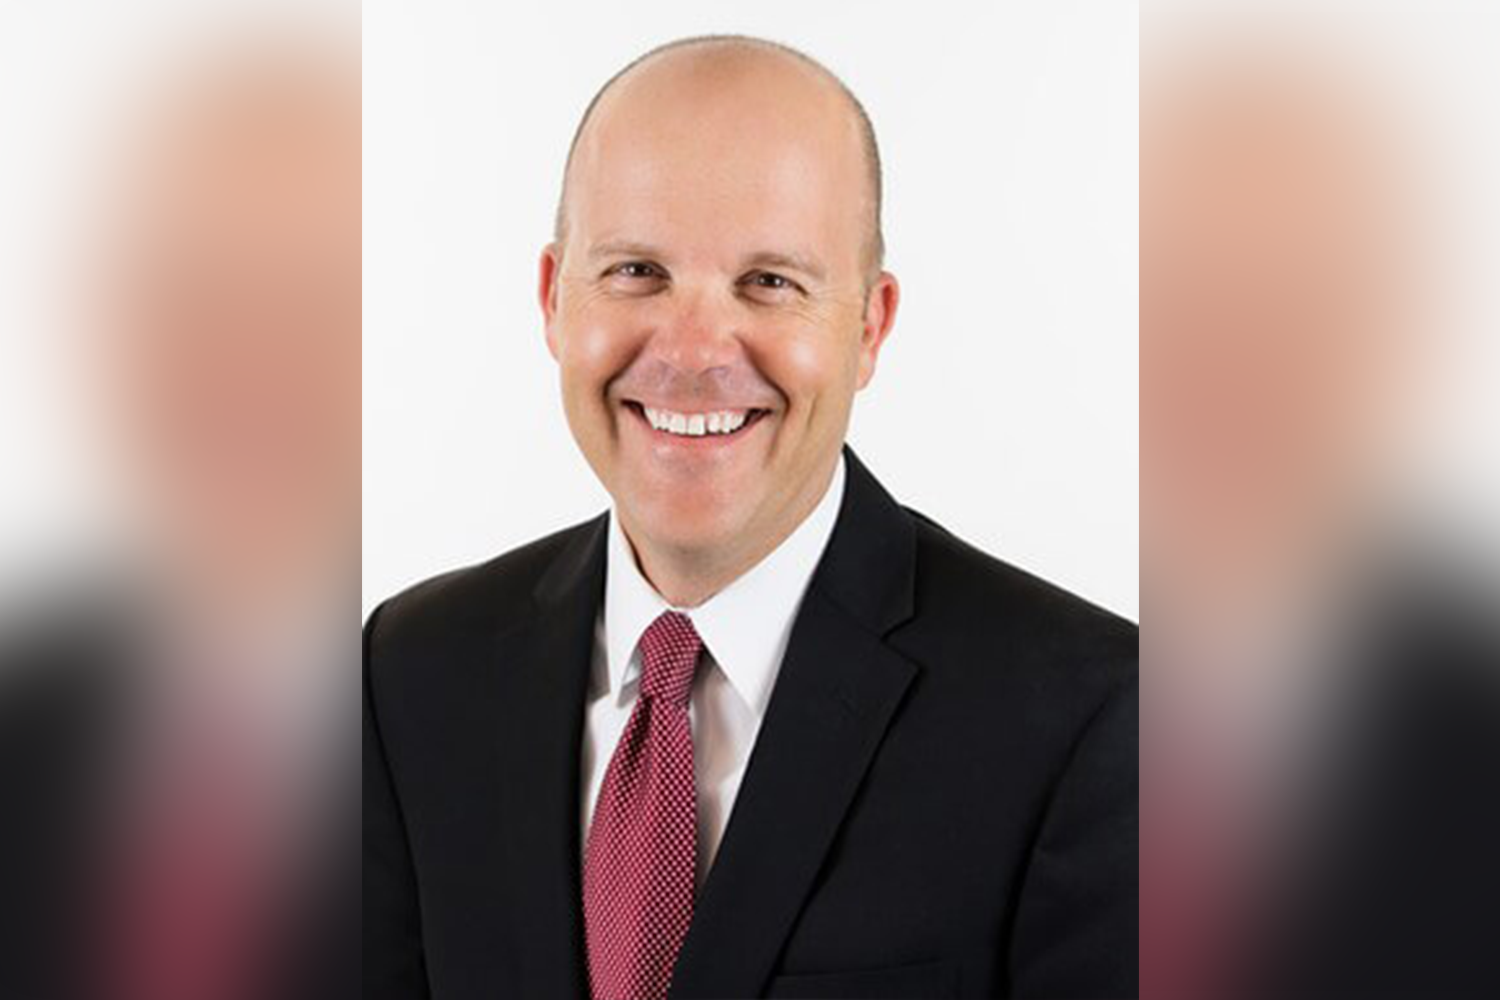 Miles will take place of the currentRSD Superintendent Dr. Eric Knost on July 1, 2019.